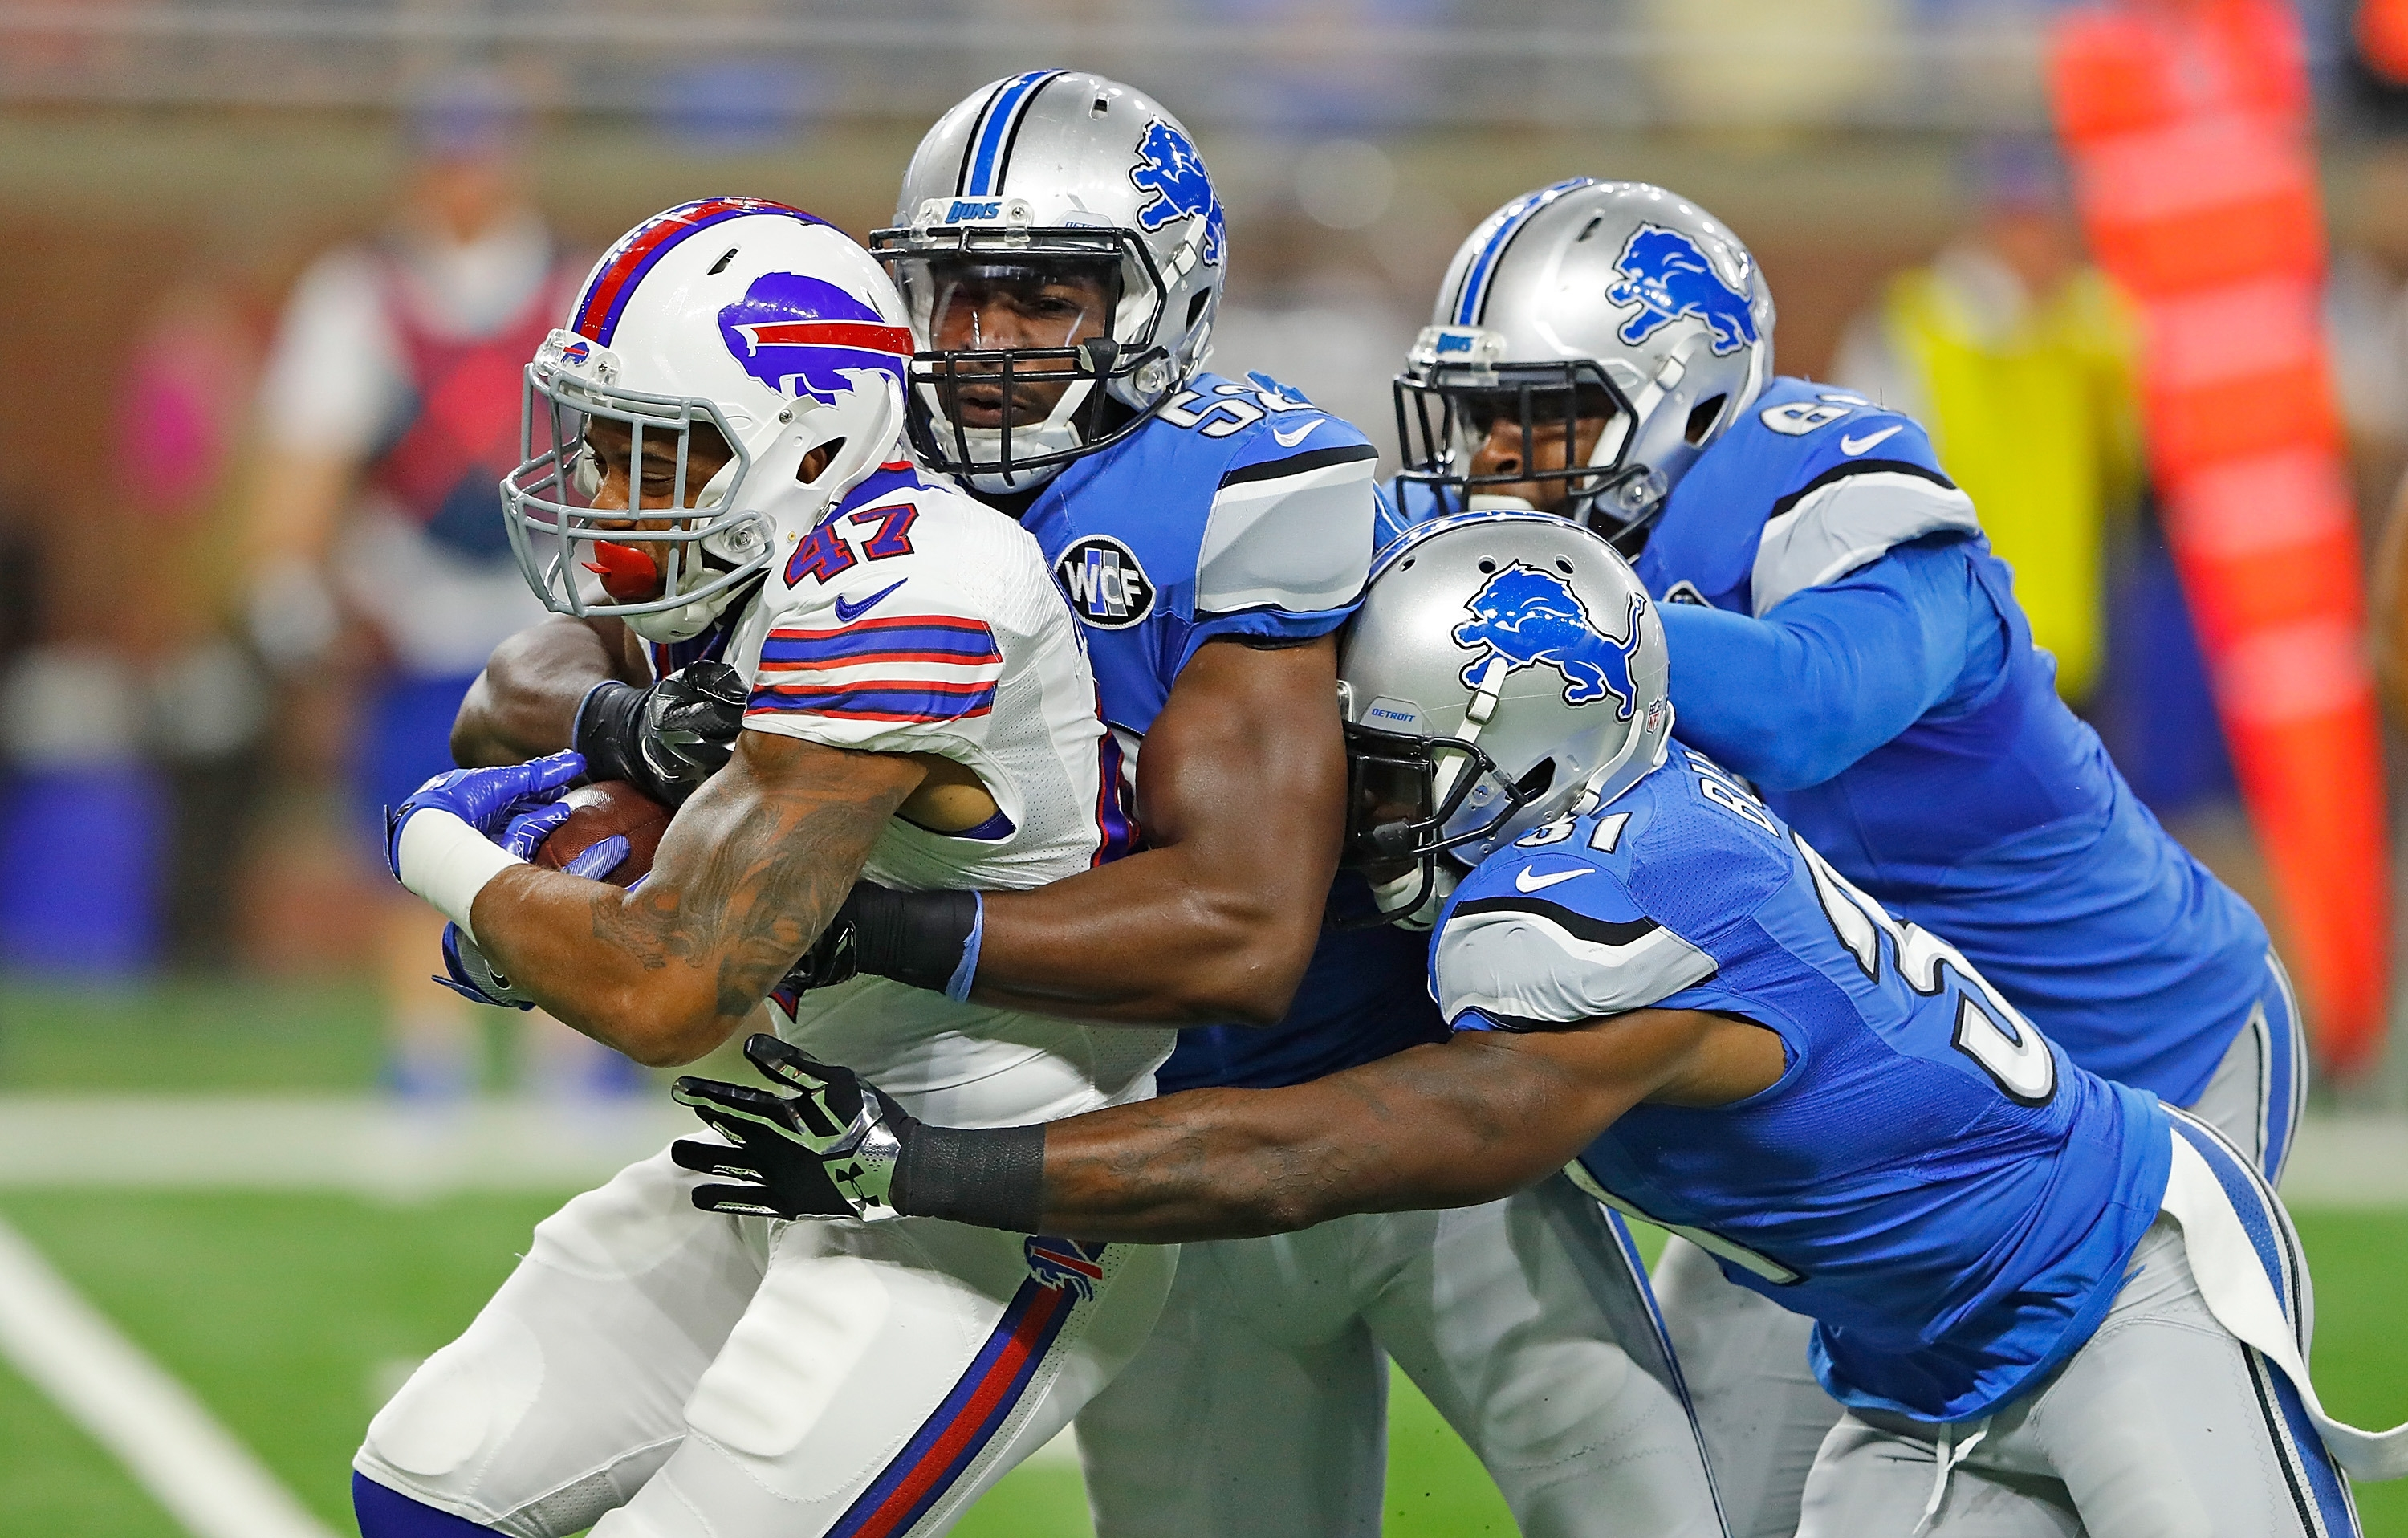 Dan Herron gets wrapped up by the Lions defense.